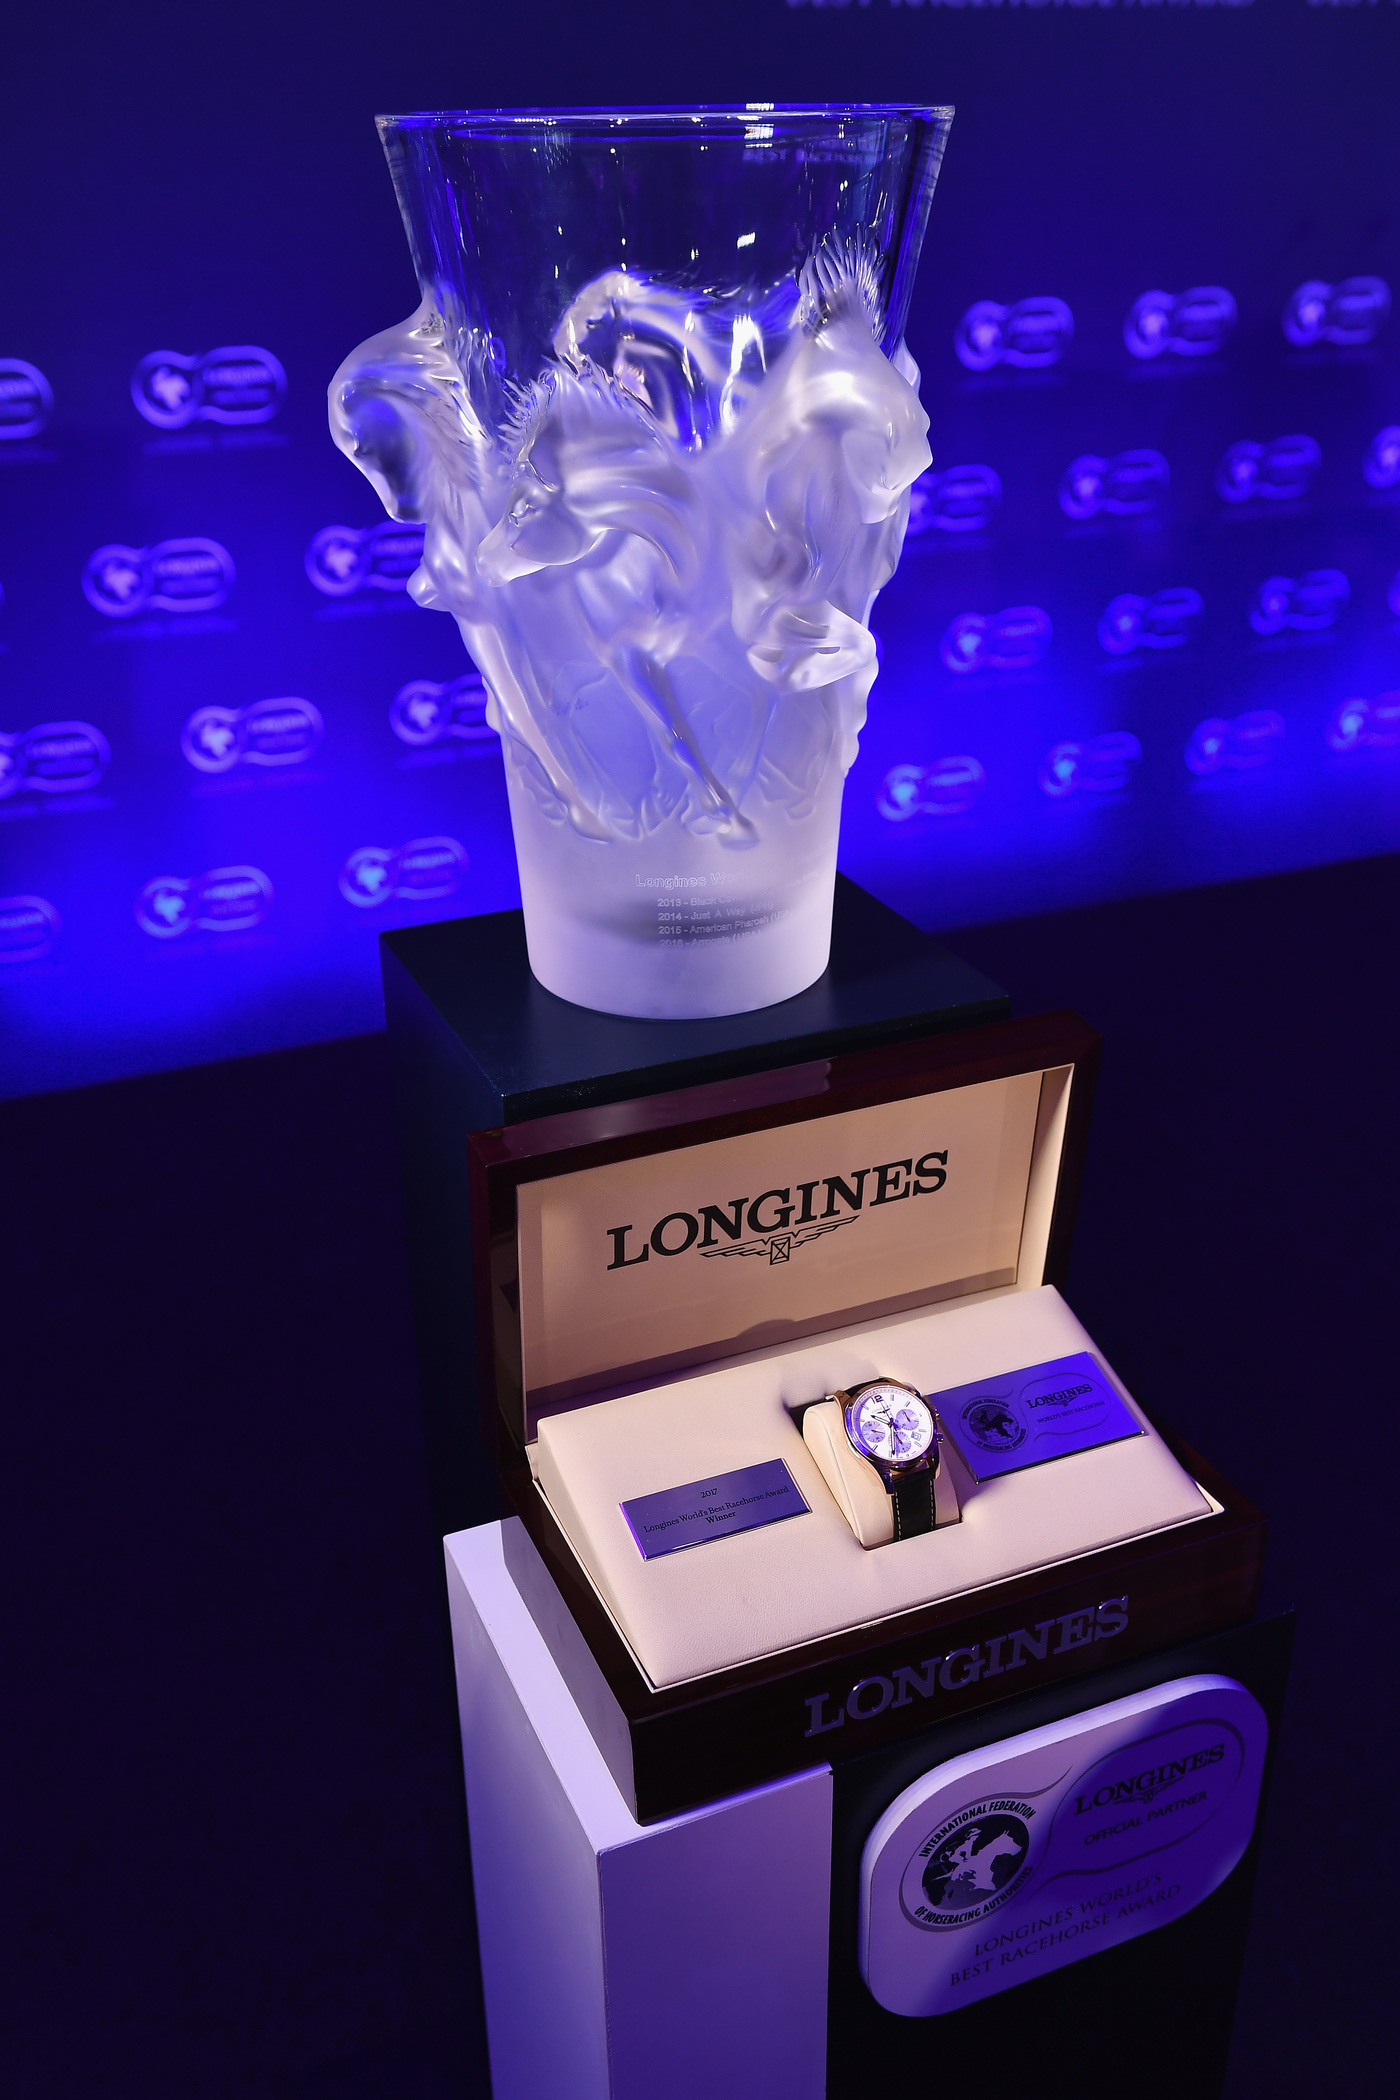 Longines Flat Racing Event: Arrogate crowned the Longines World's Best Racehorse for the second year in a row, Qatar Prix de l'Arc de Triomphe named Longines World's Best Horse Race for the second time 5